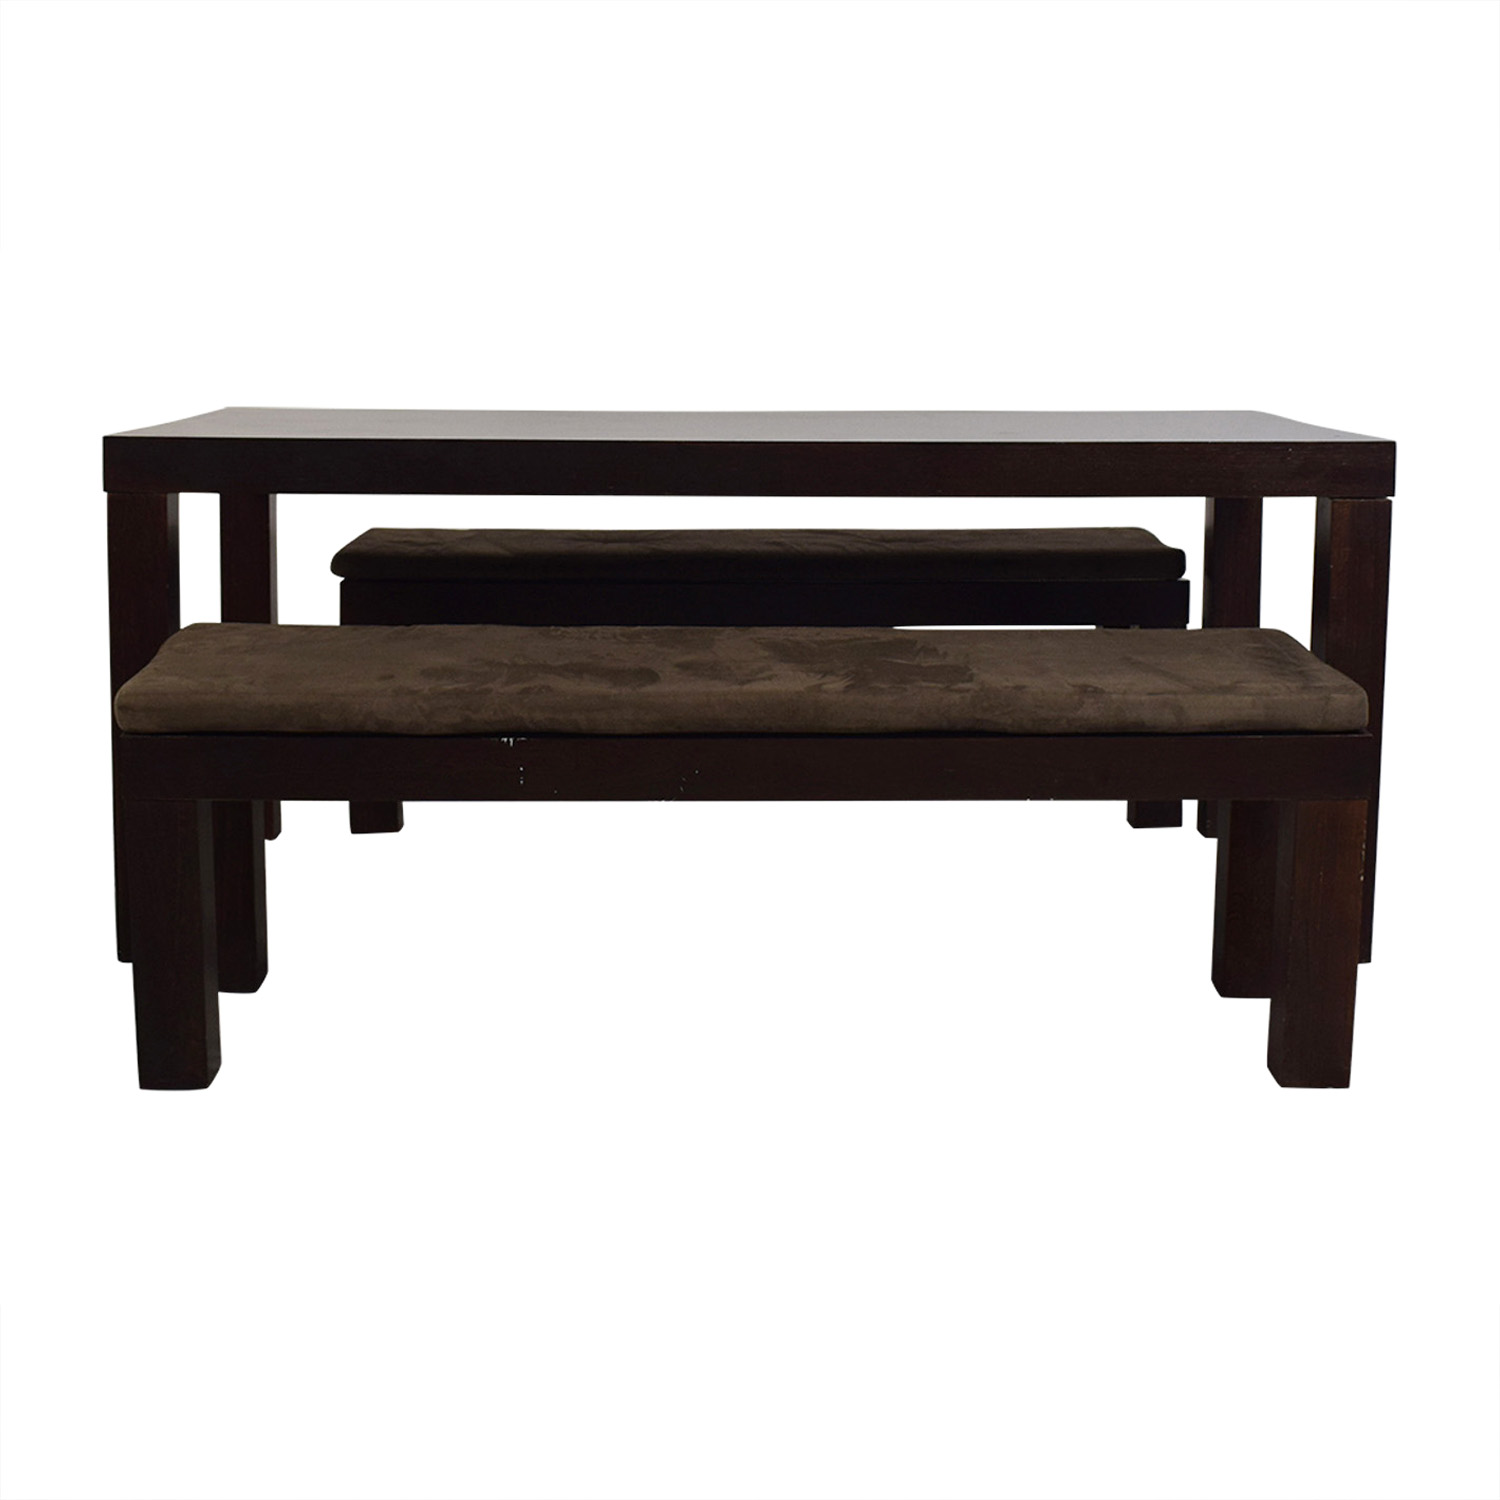 CB2 Indie Dining Table with Benches / Dining Sets